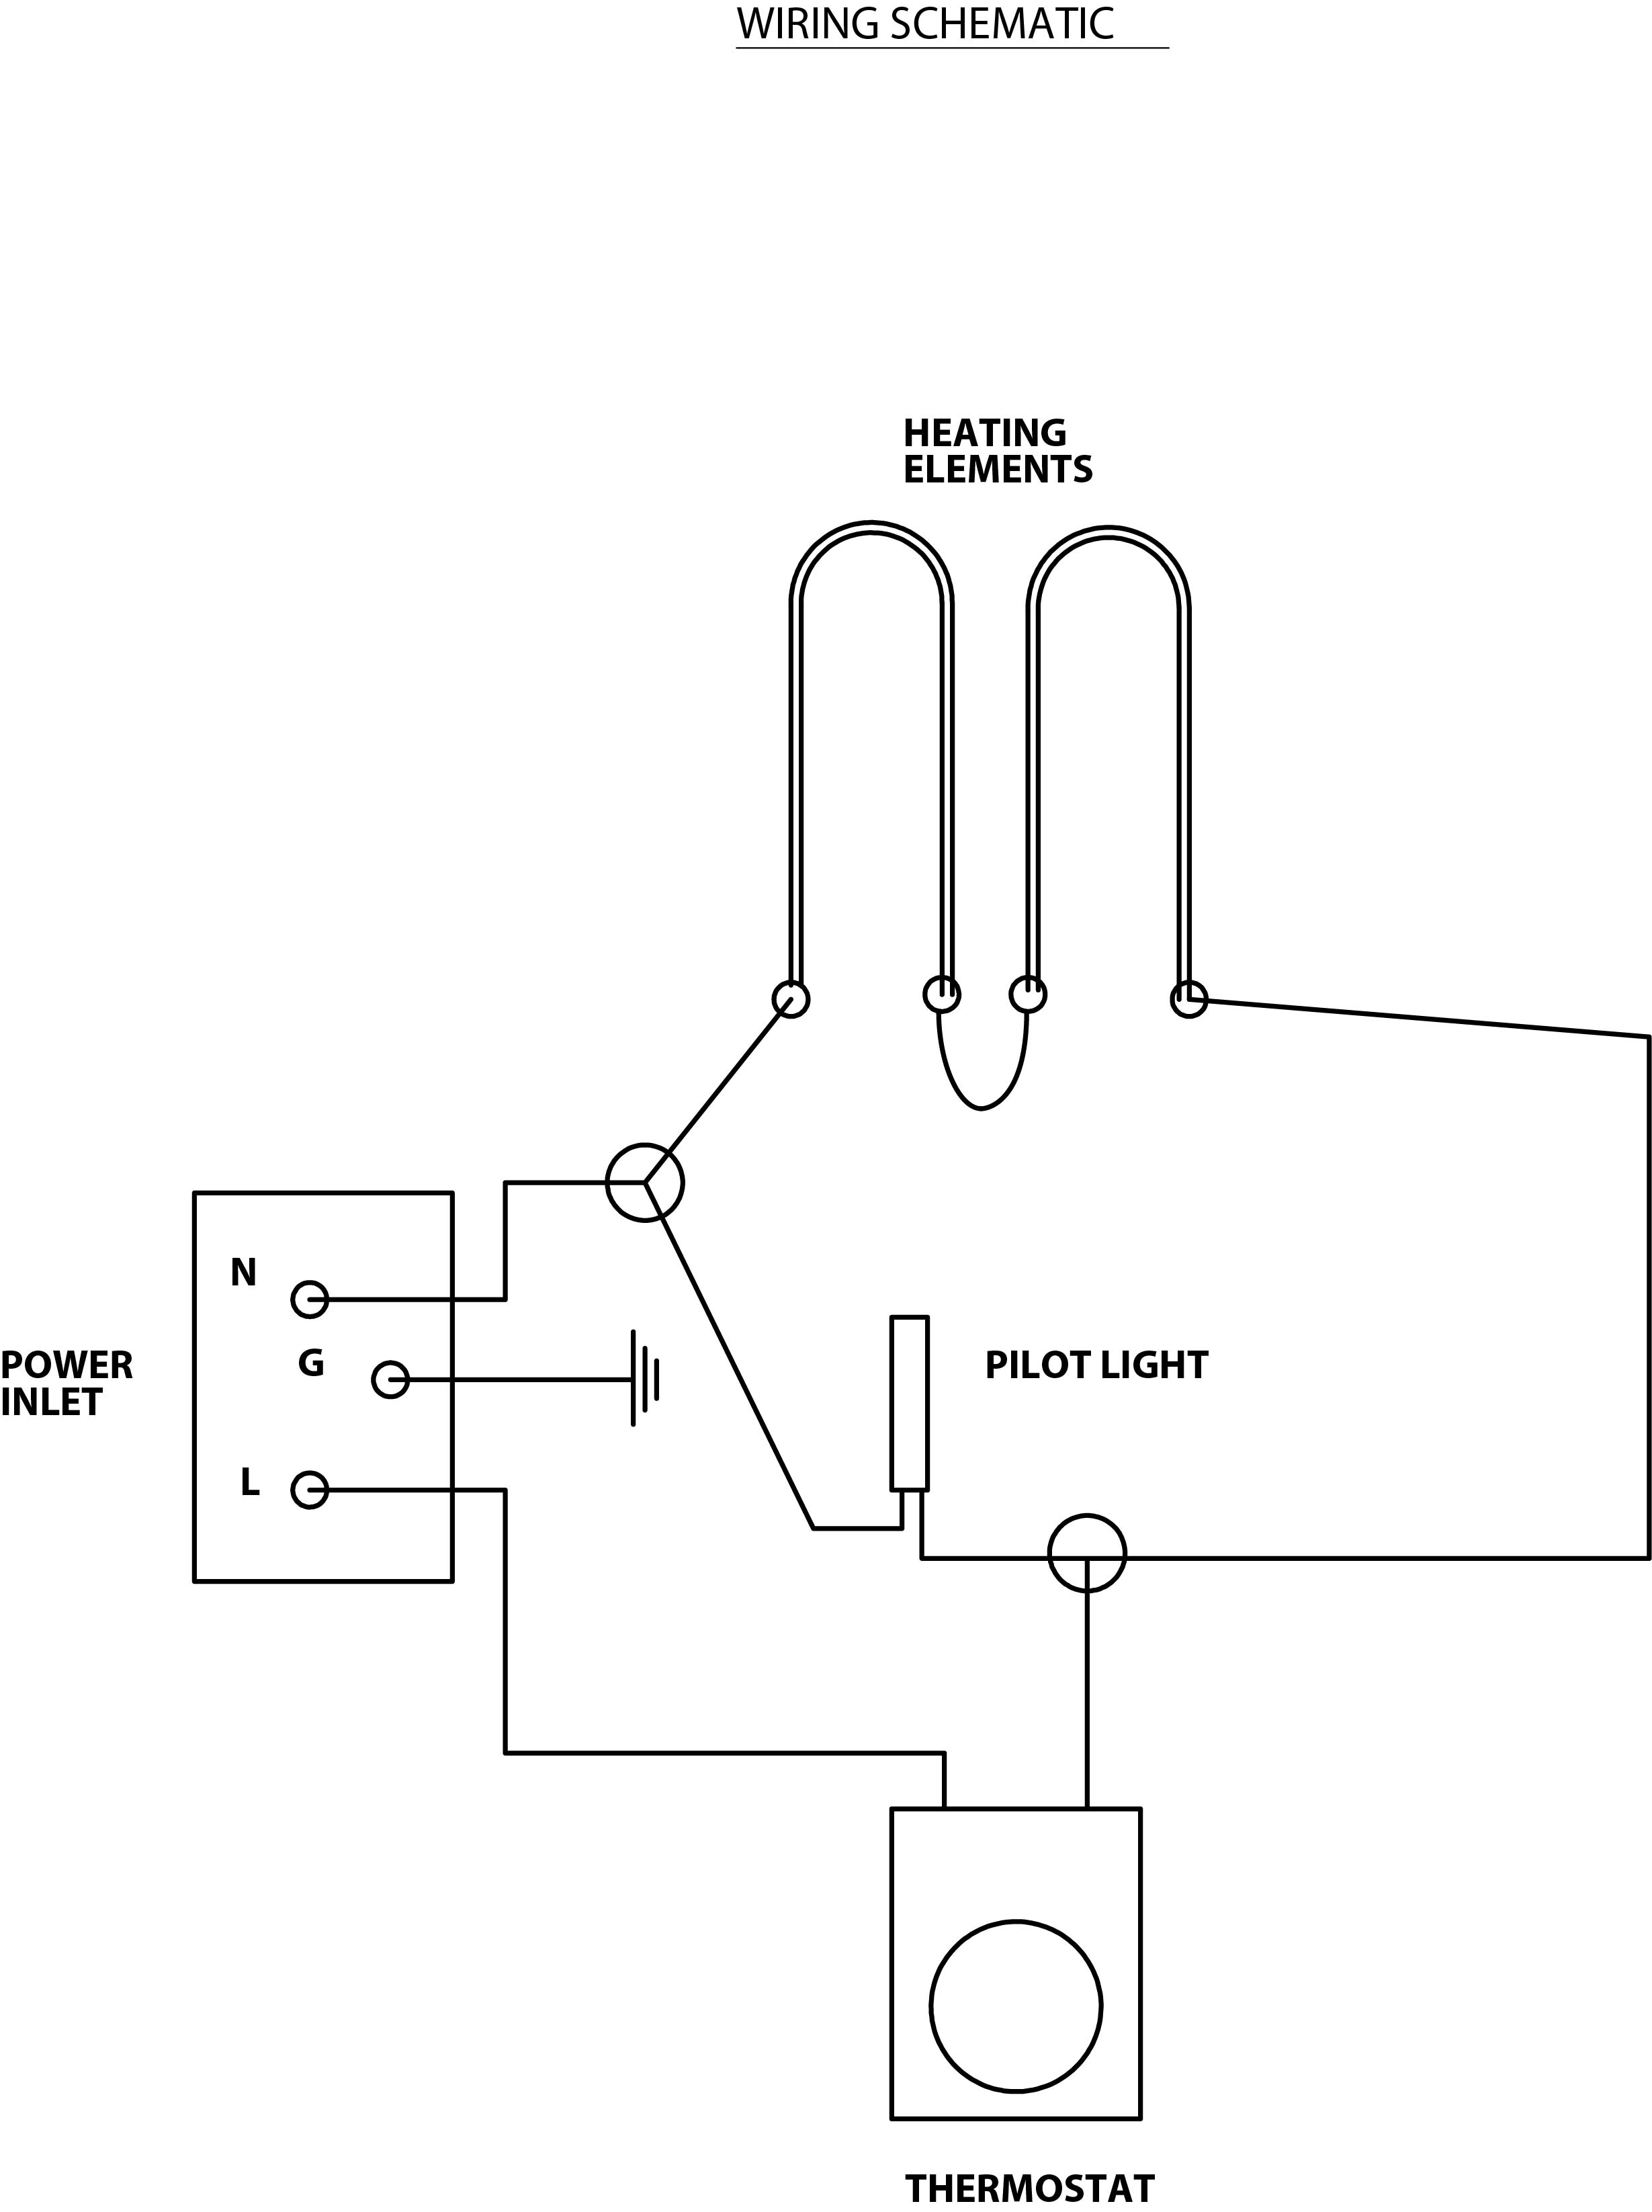 3 Phase Thermostat Diagram